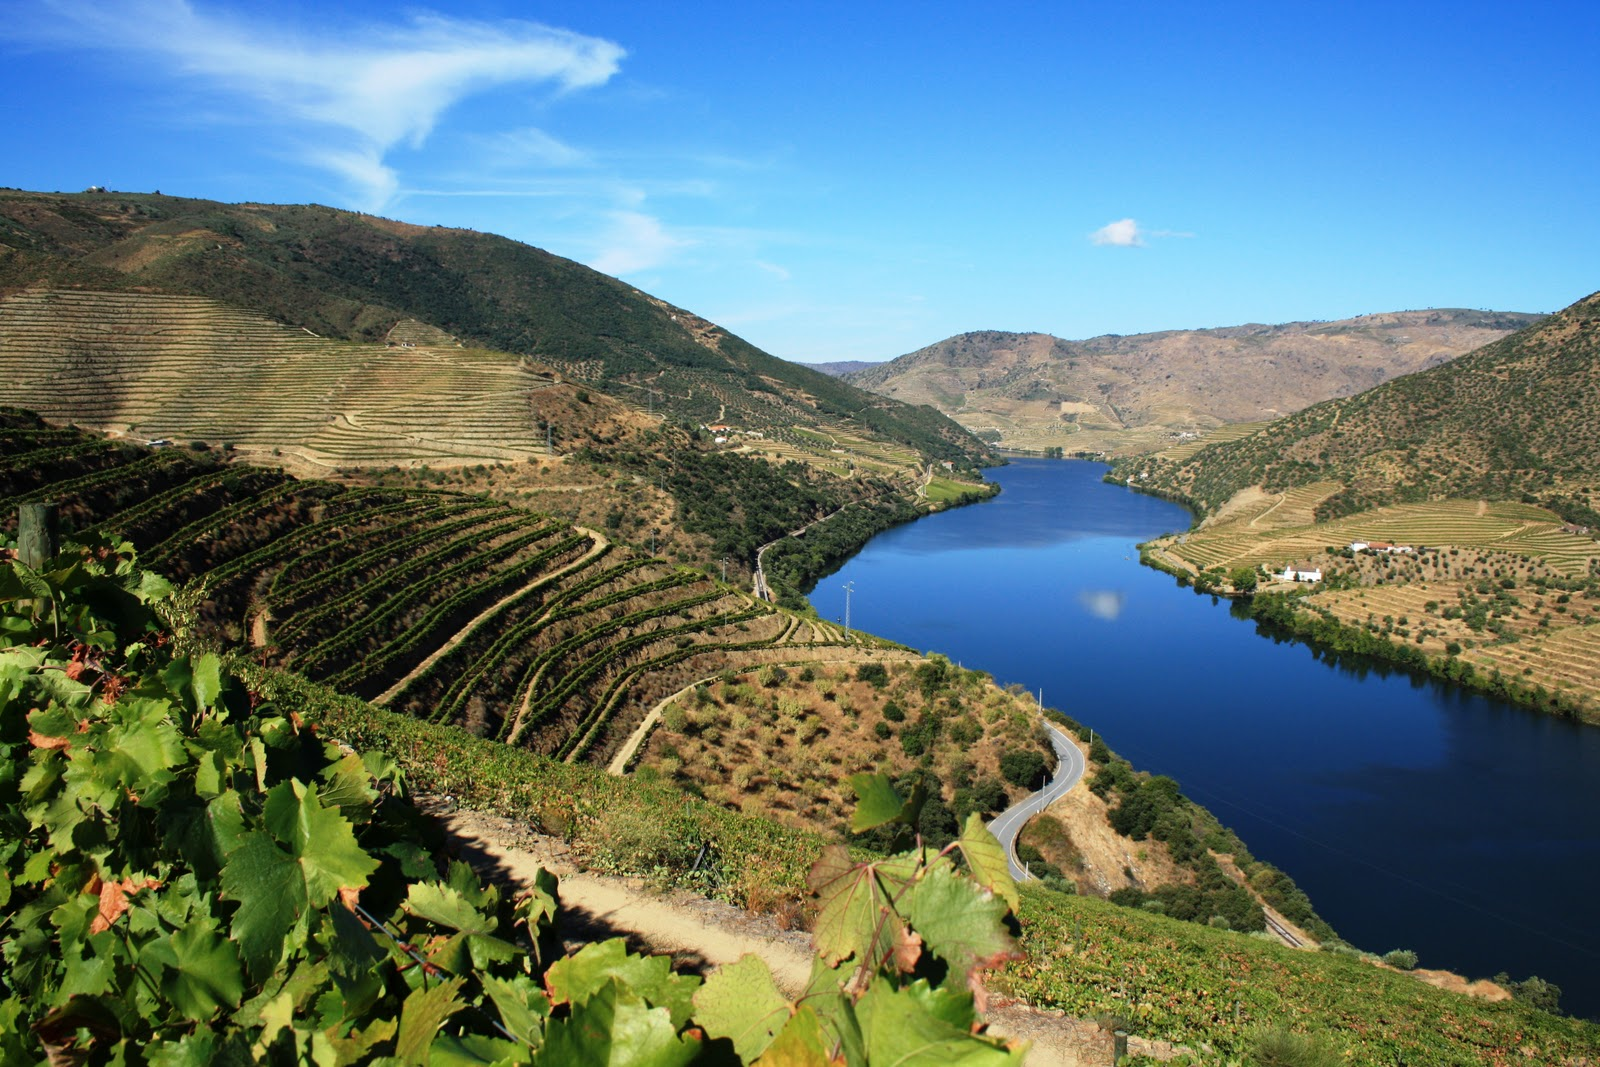 Vineyards in the Douro Valley of Portugal